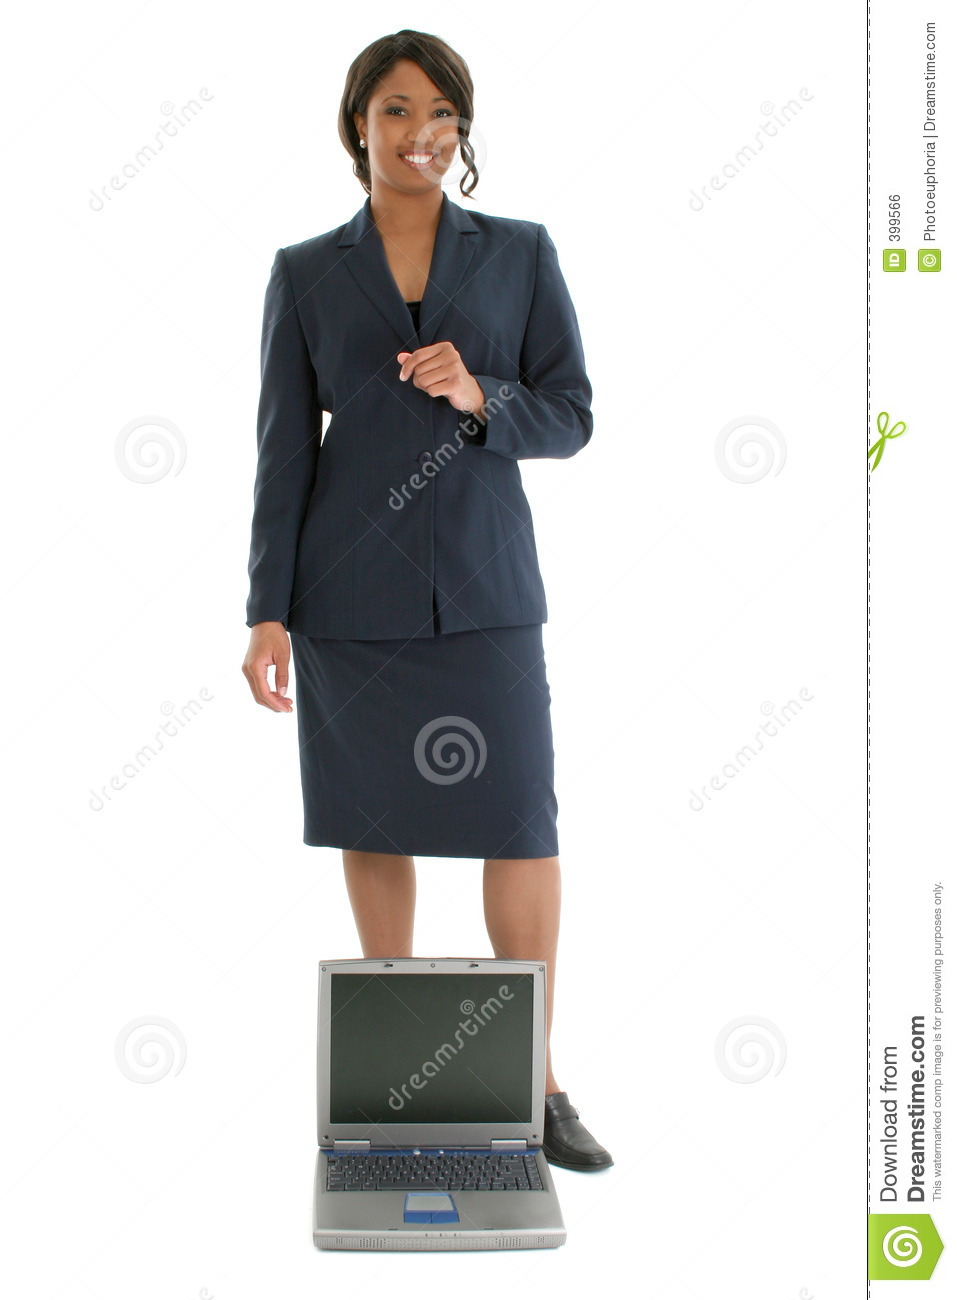 Stock Photography: Business Woman Behind Open Laptop